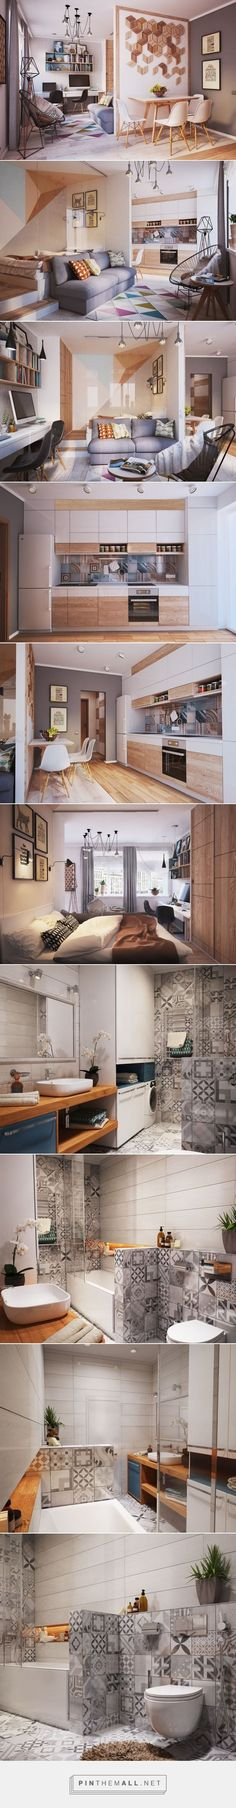 Living Small With Style: 2 Beautiful Small Apartment Plans Under 500 Square Feet (50 Square Meters) - created via http://pinthemall.net: